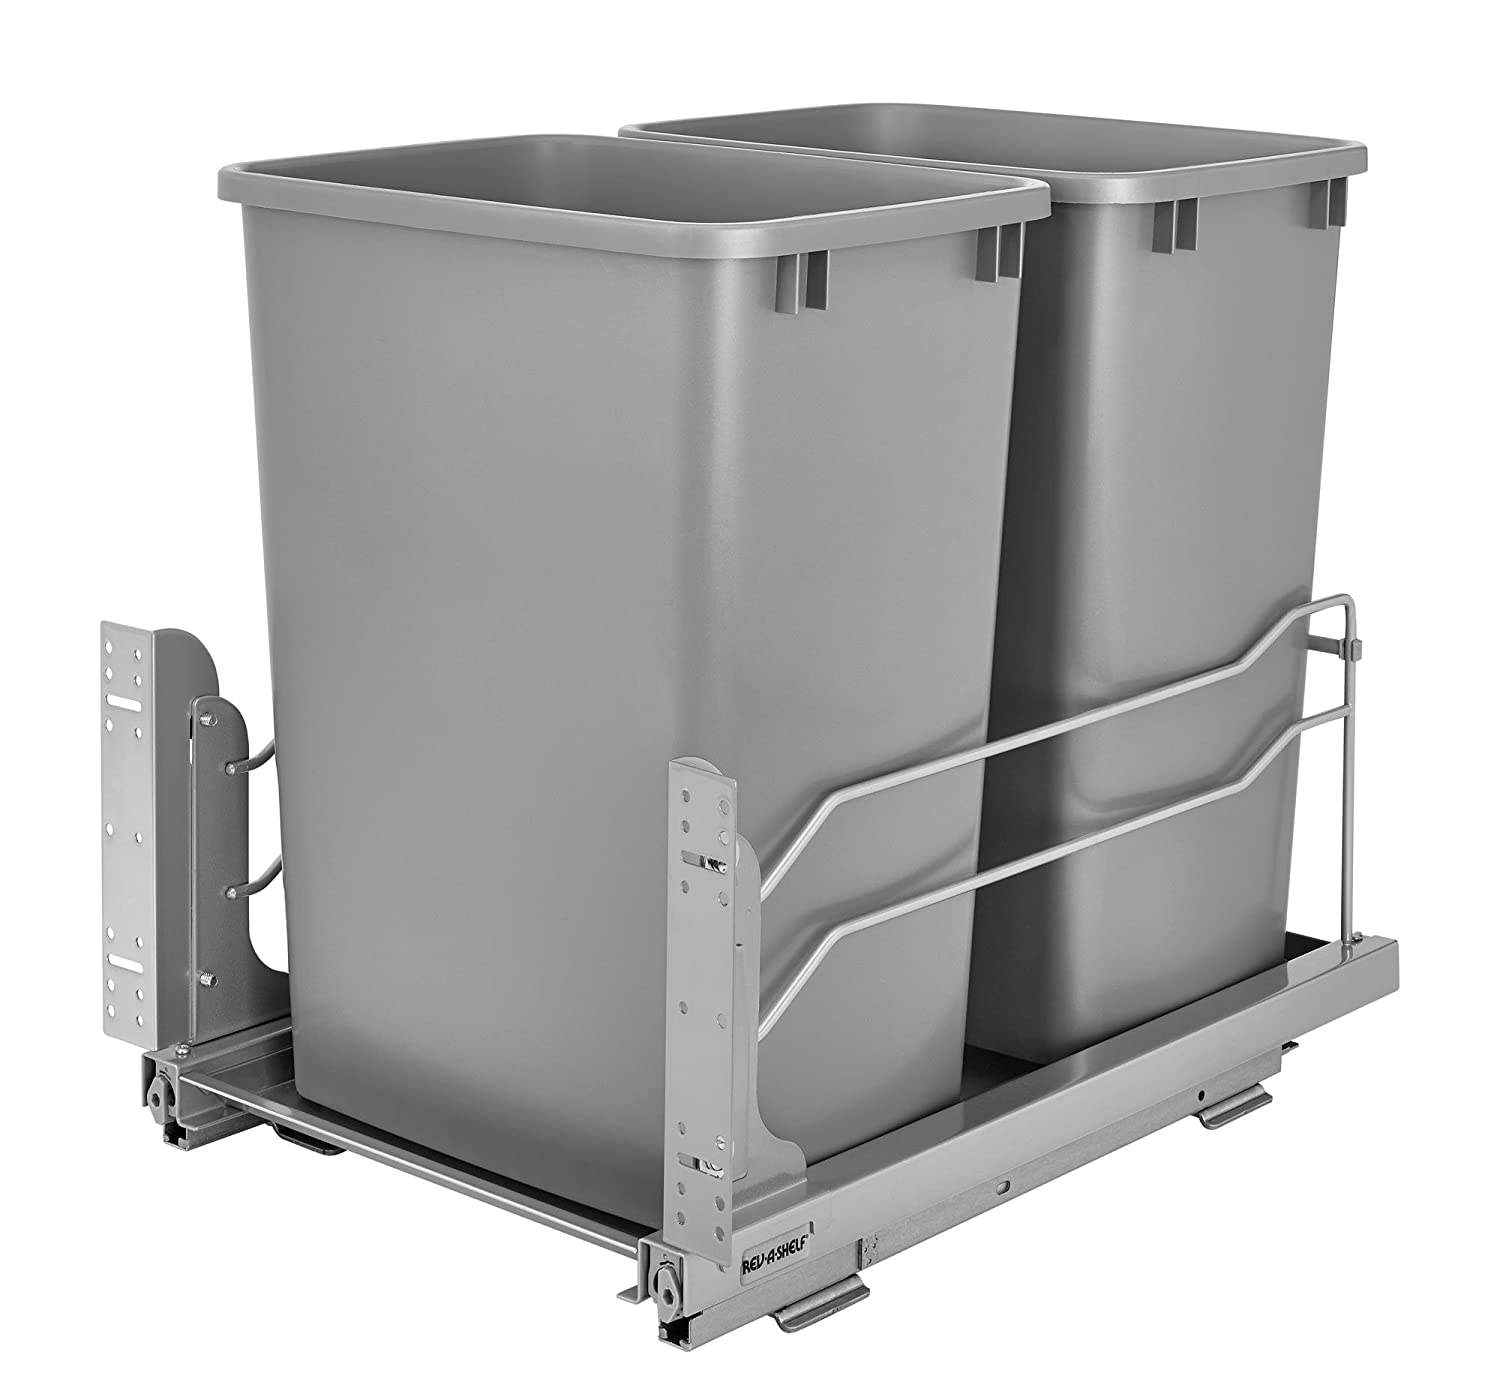 Rev-A-Shelf 53WC-1835SCDM-217-Double 35 quart Pull-Out Silver Waste Container with Soft-Close Slides, Silver Metallic